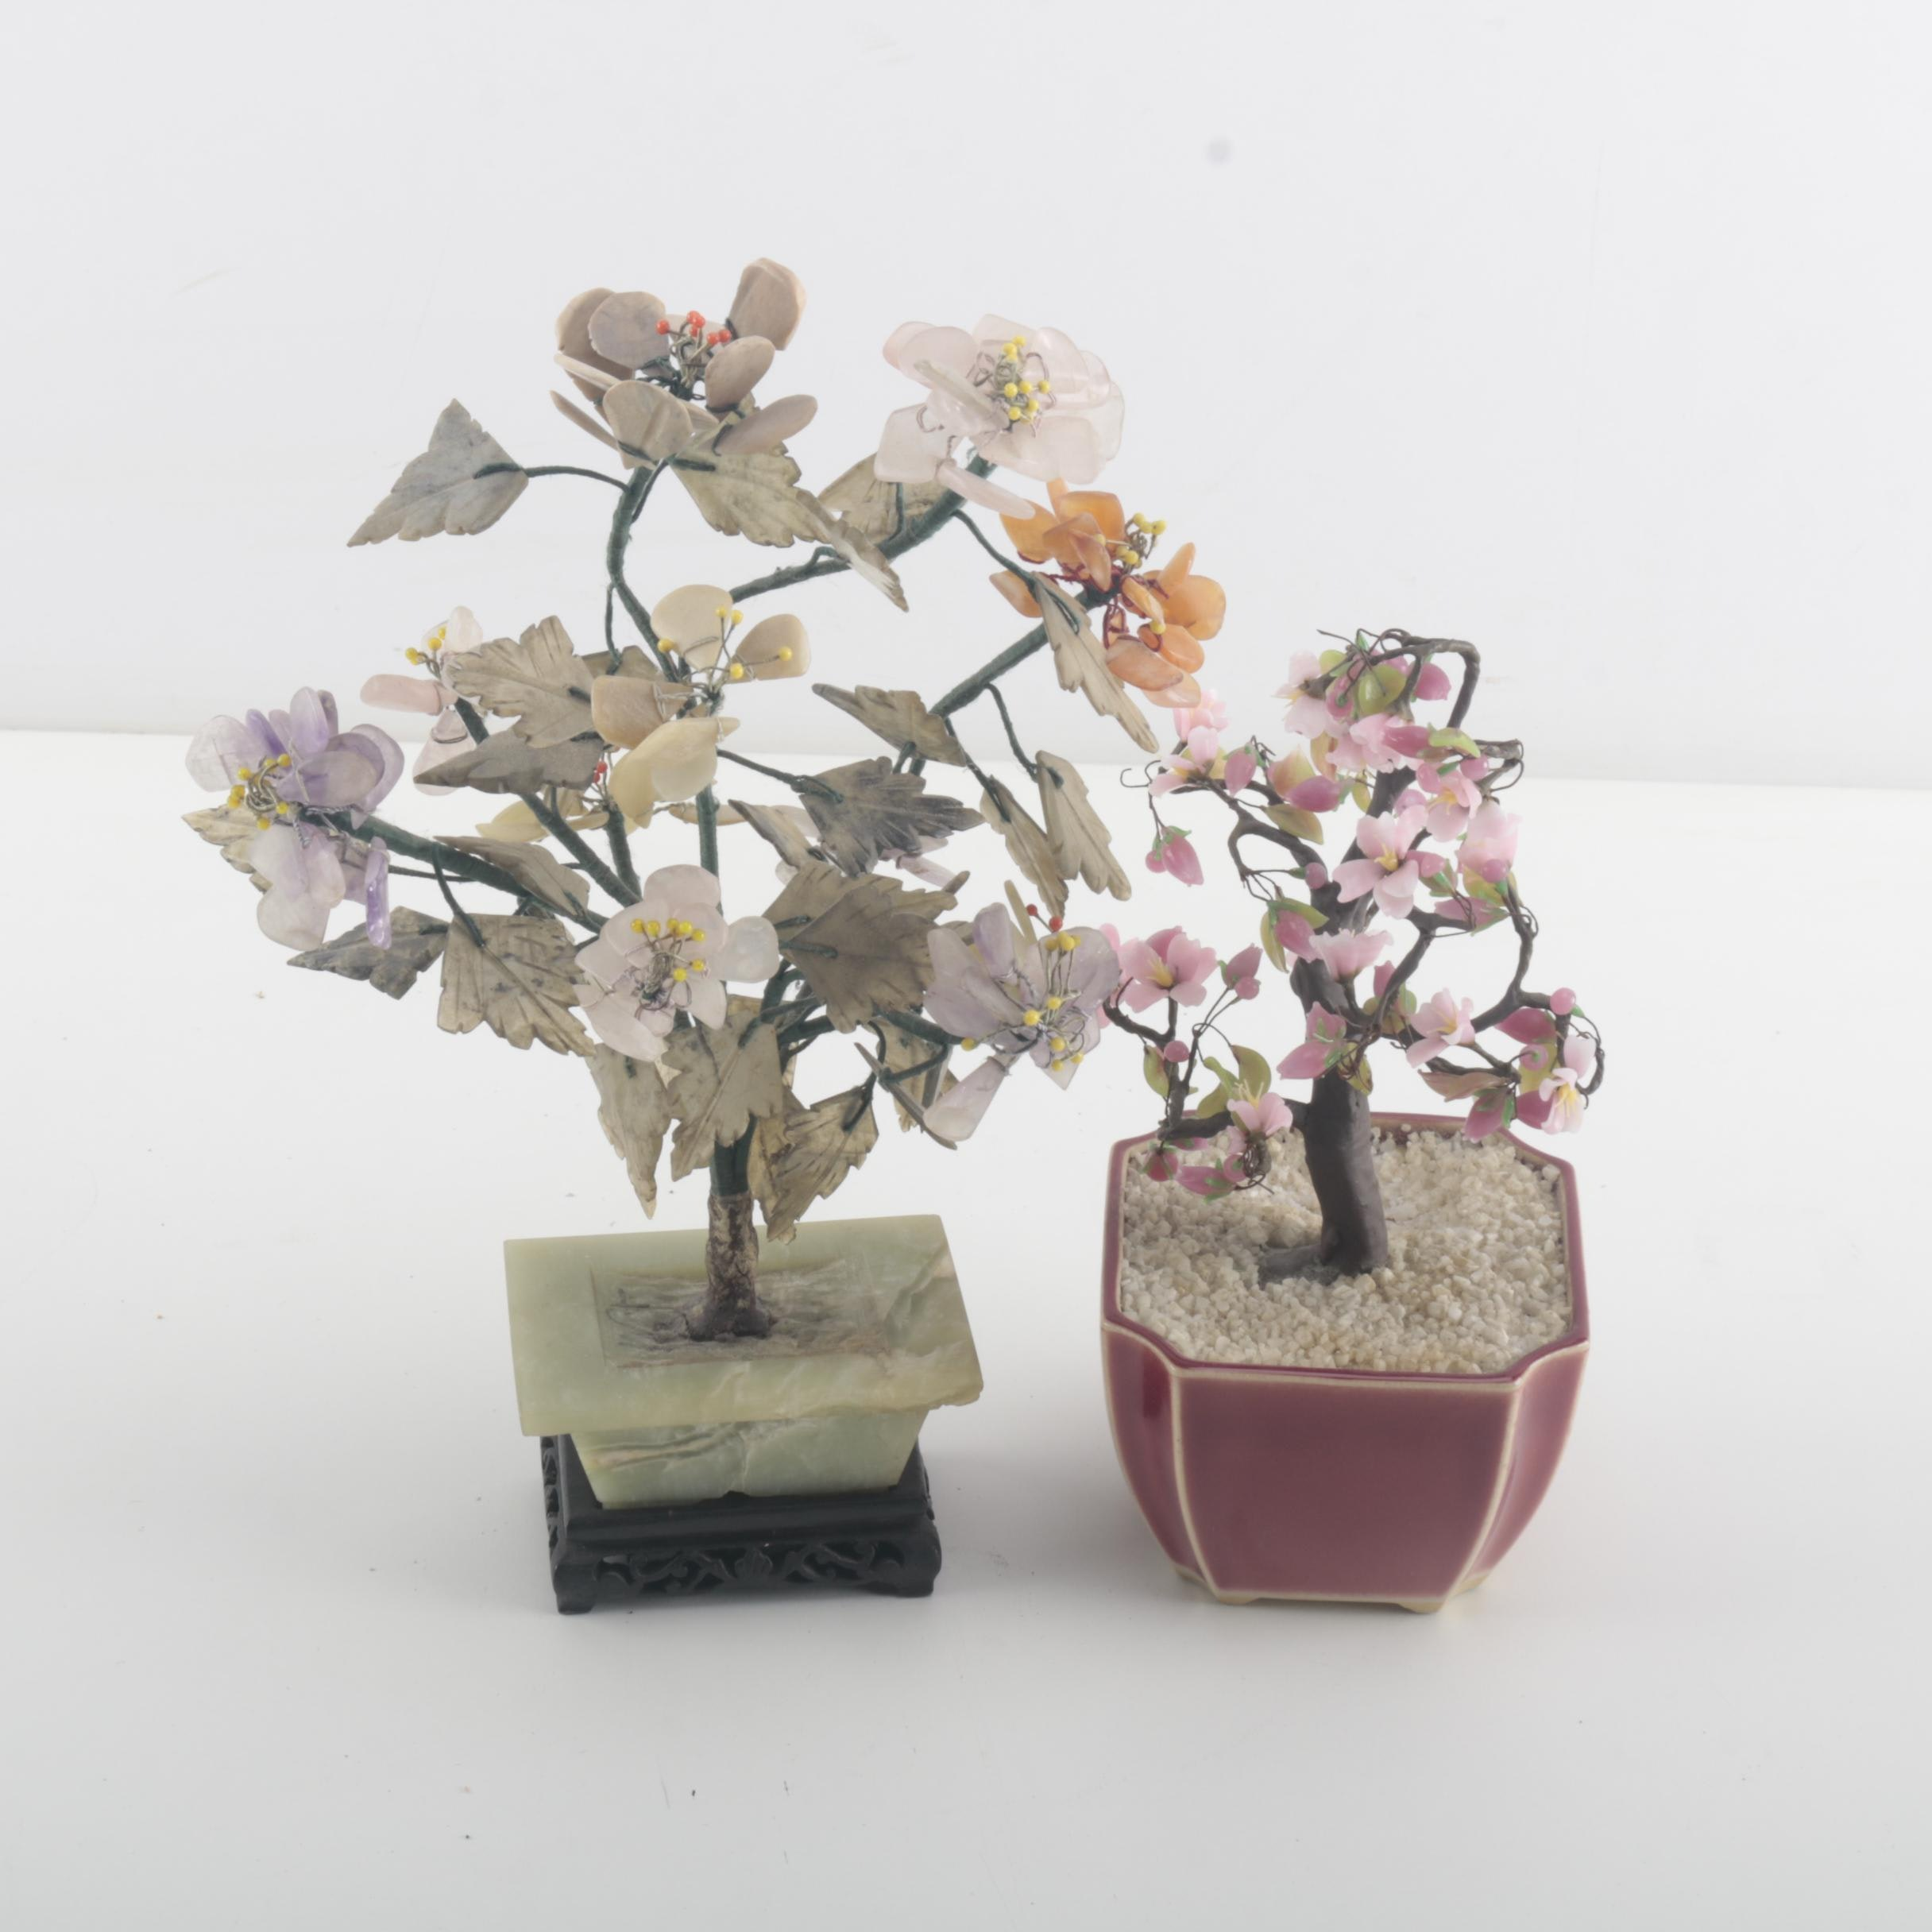 Pair of Decorative Trees From Japan